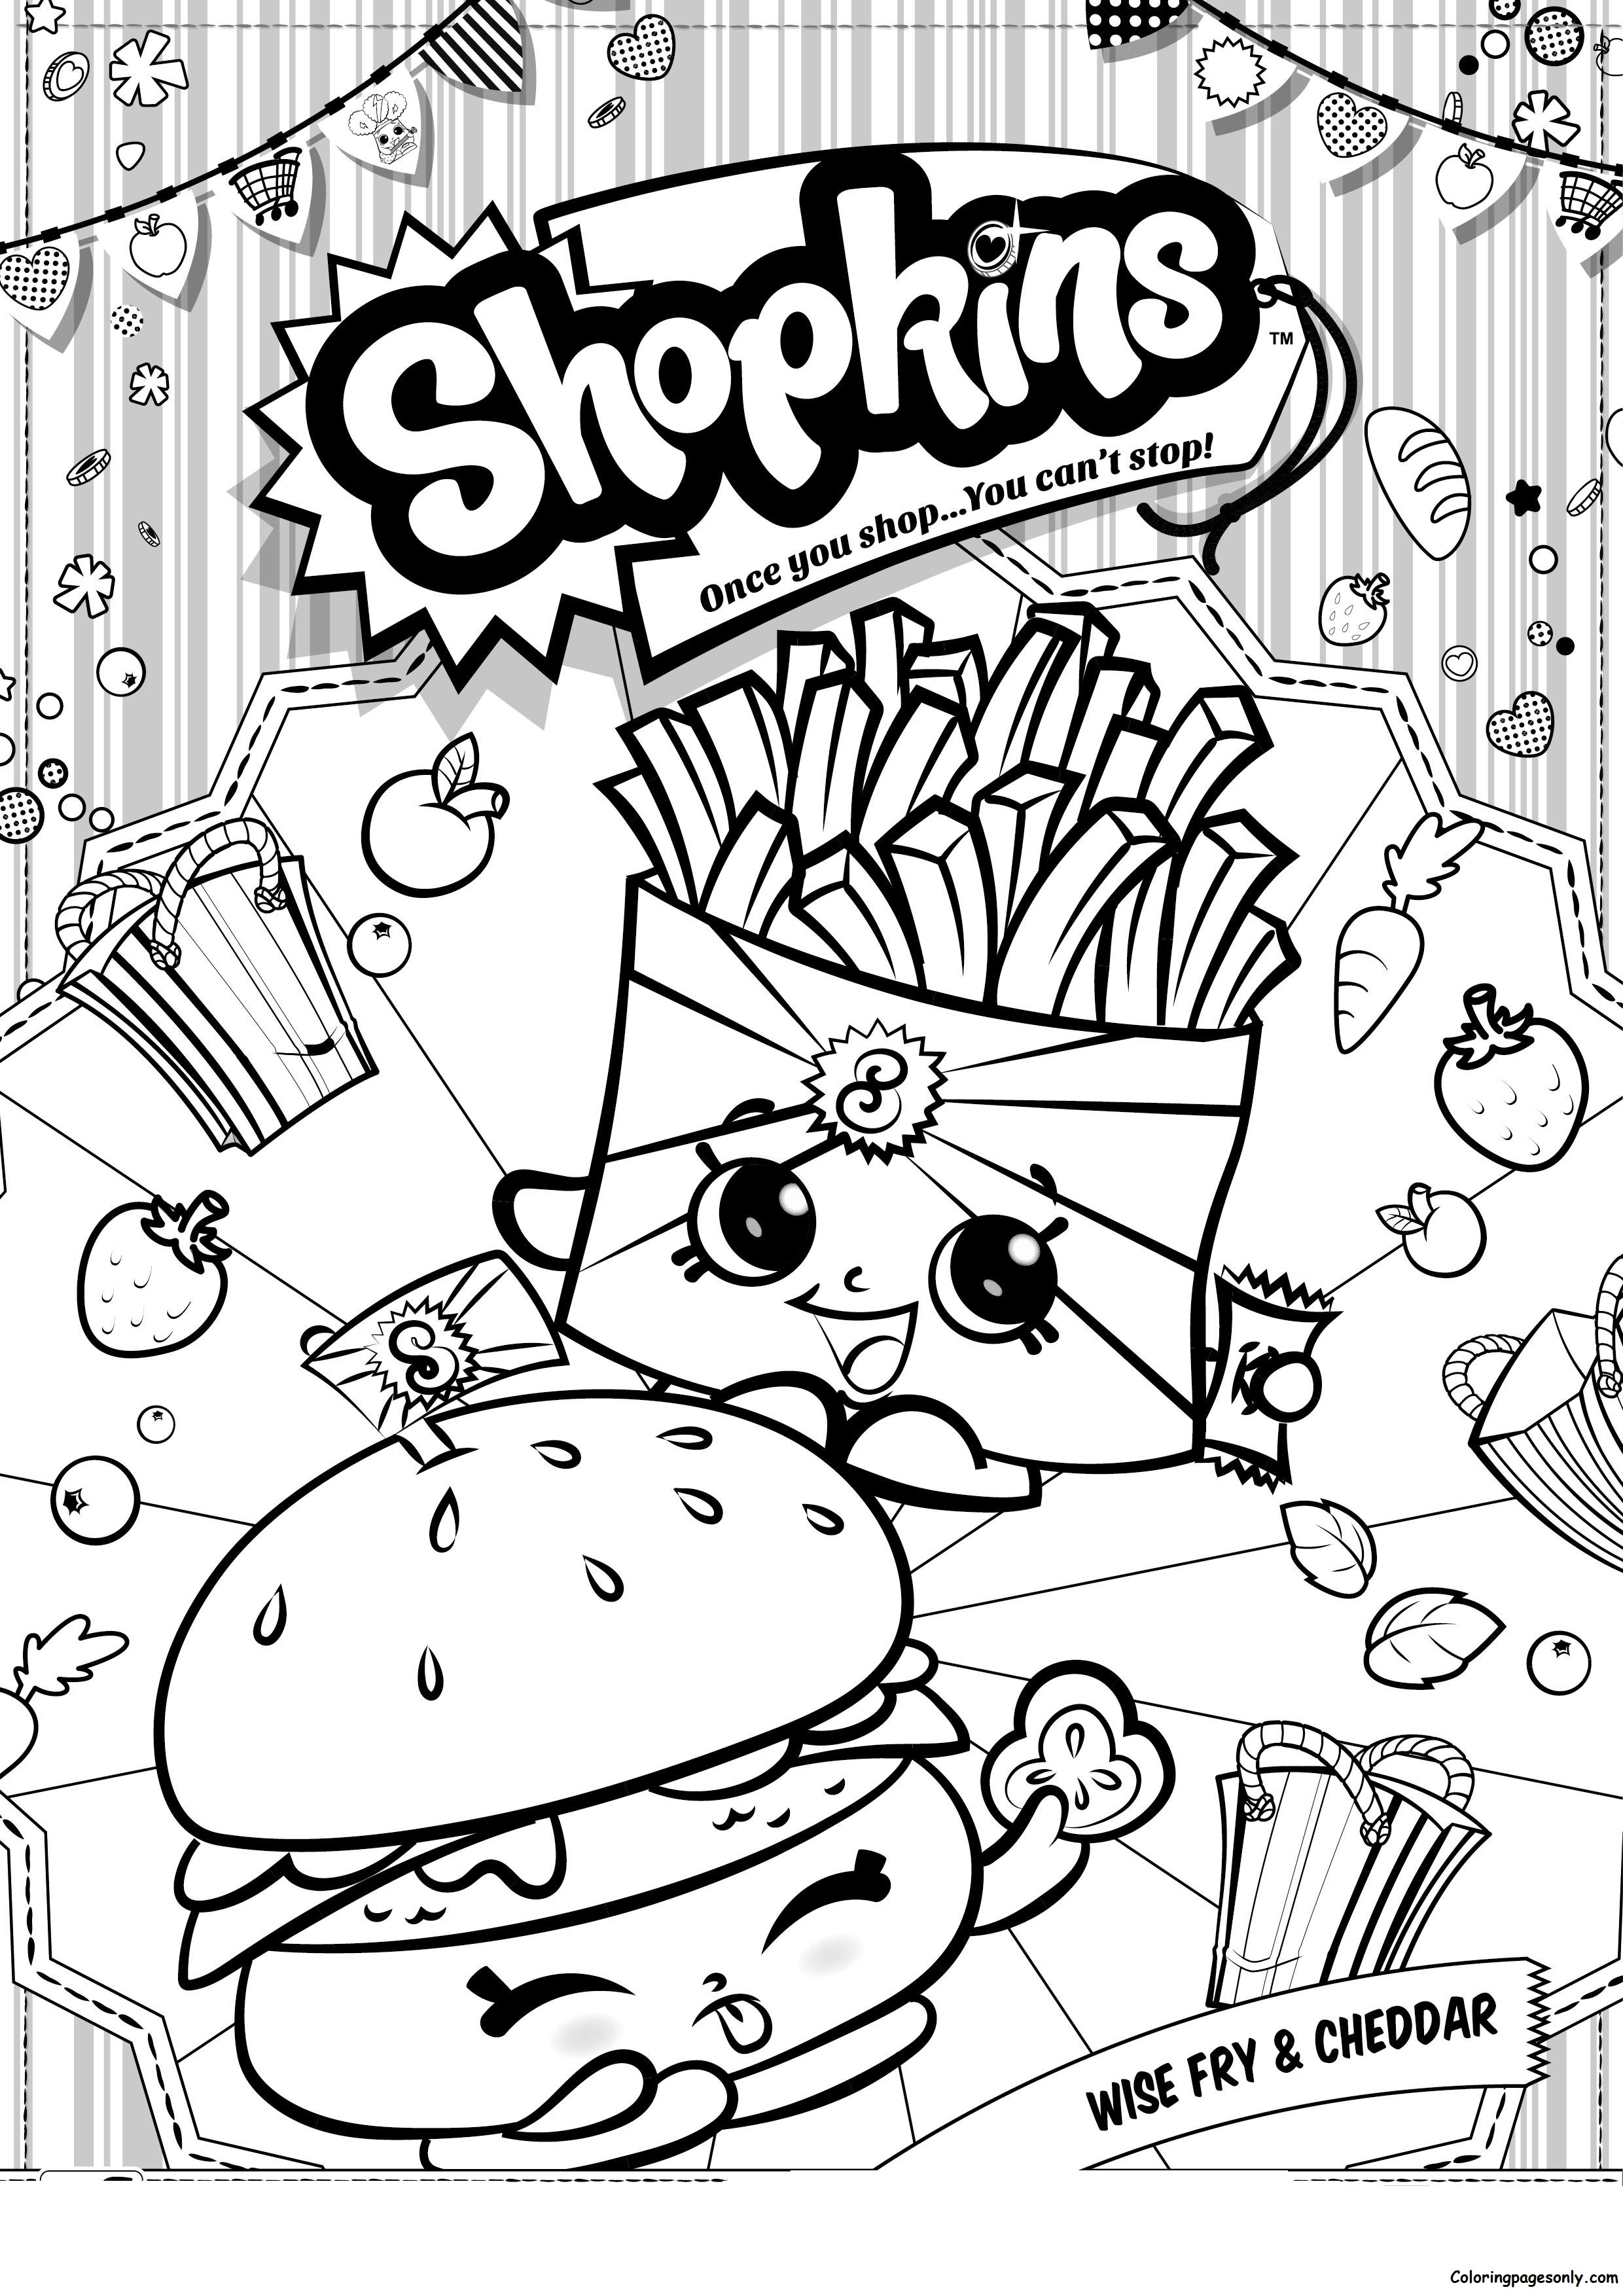 Wise Fry And Cheddar Shopkins Coloring Page Free Coloring Pages